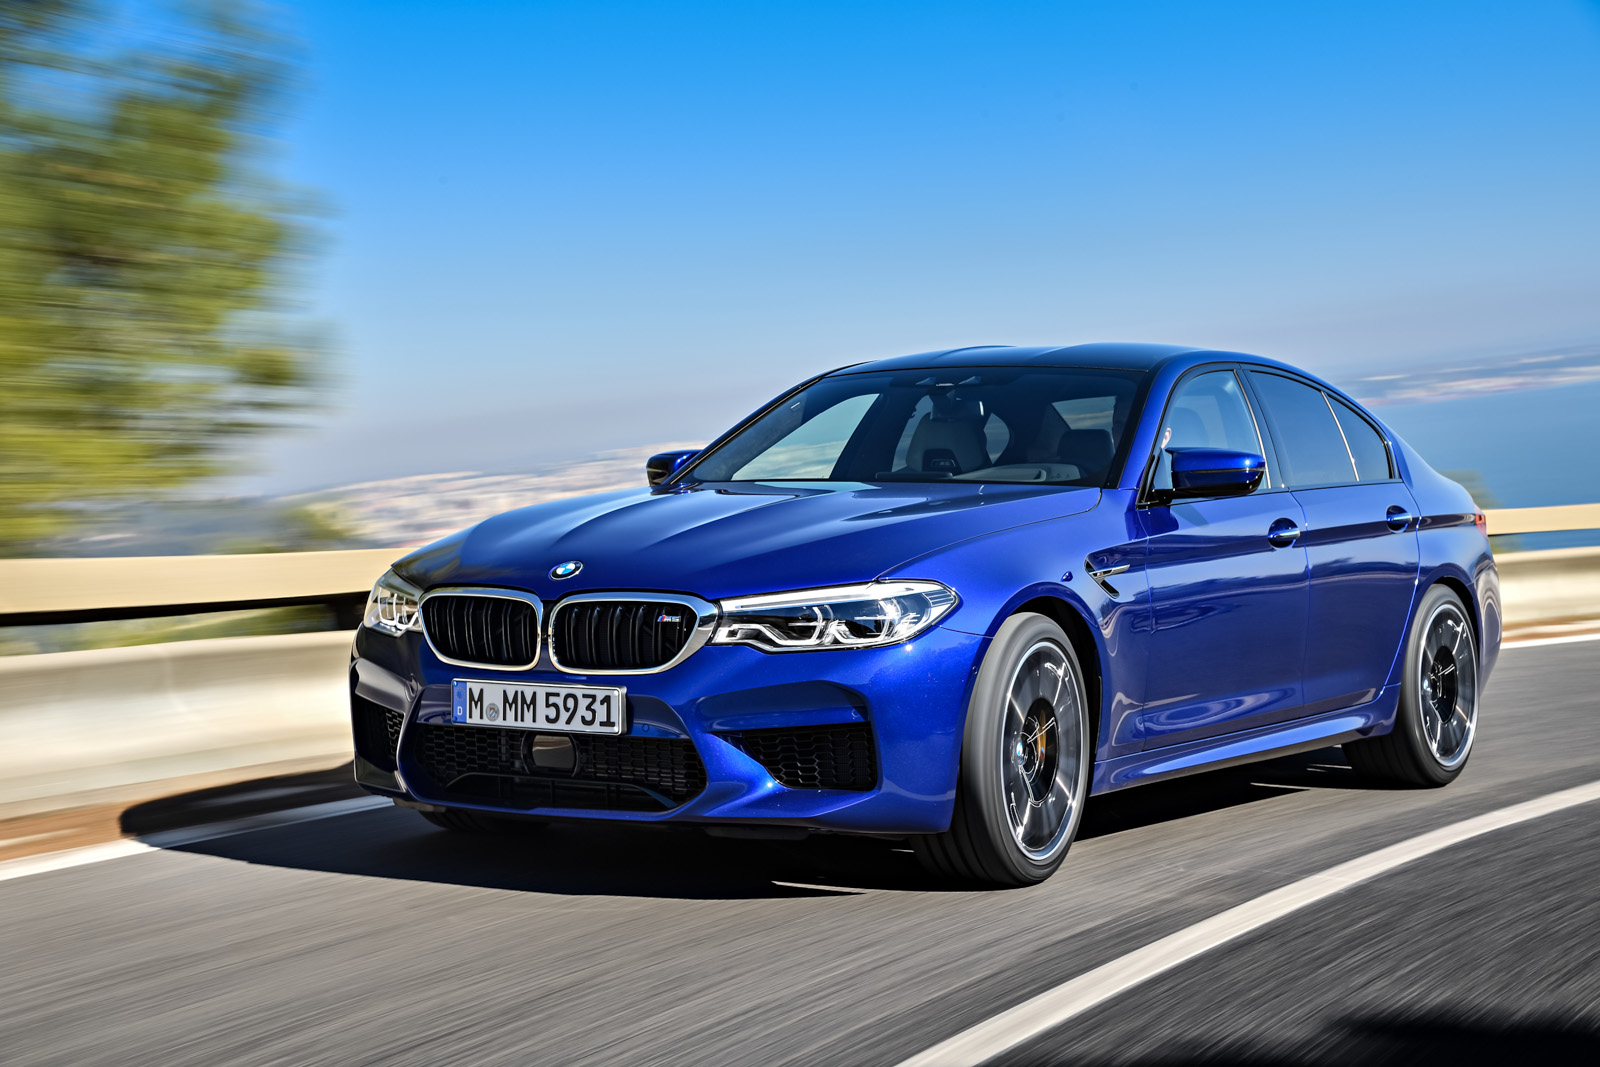 2018 Bmw M5 Review Gtspirit